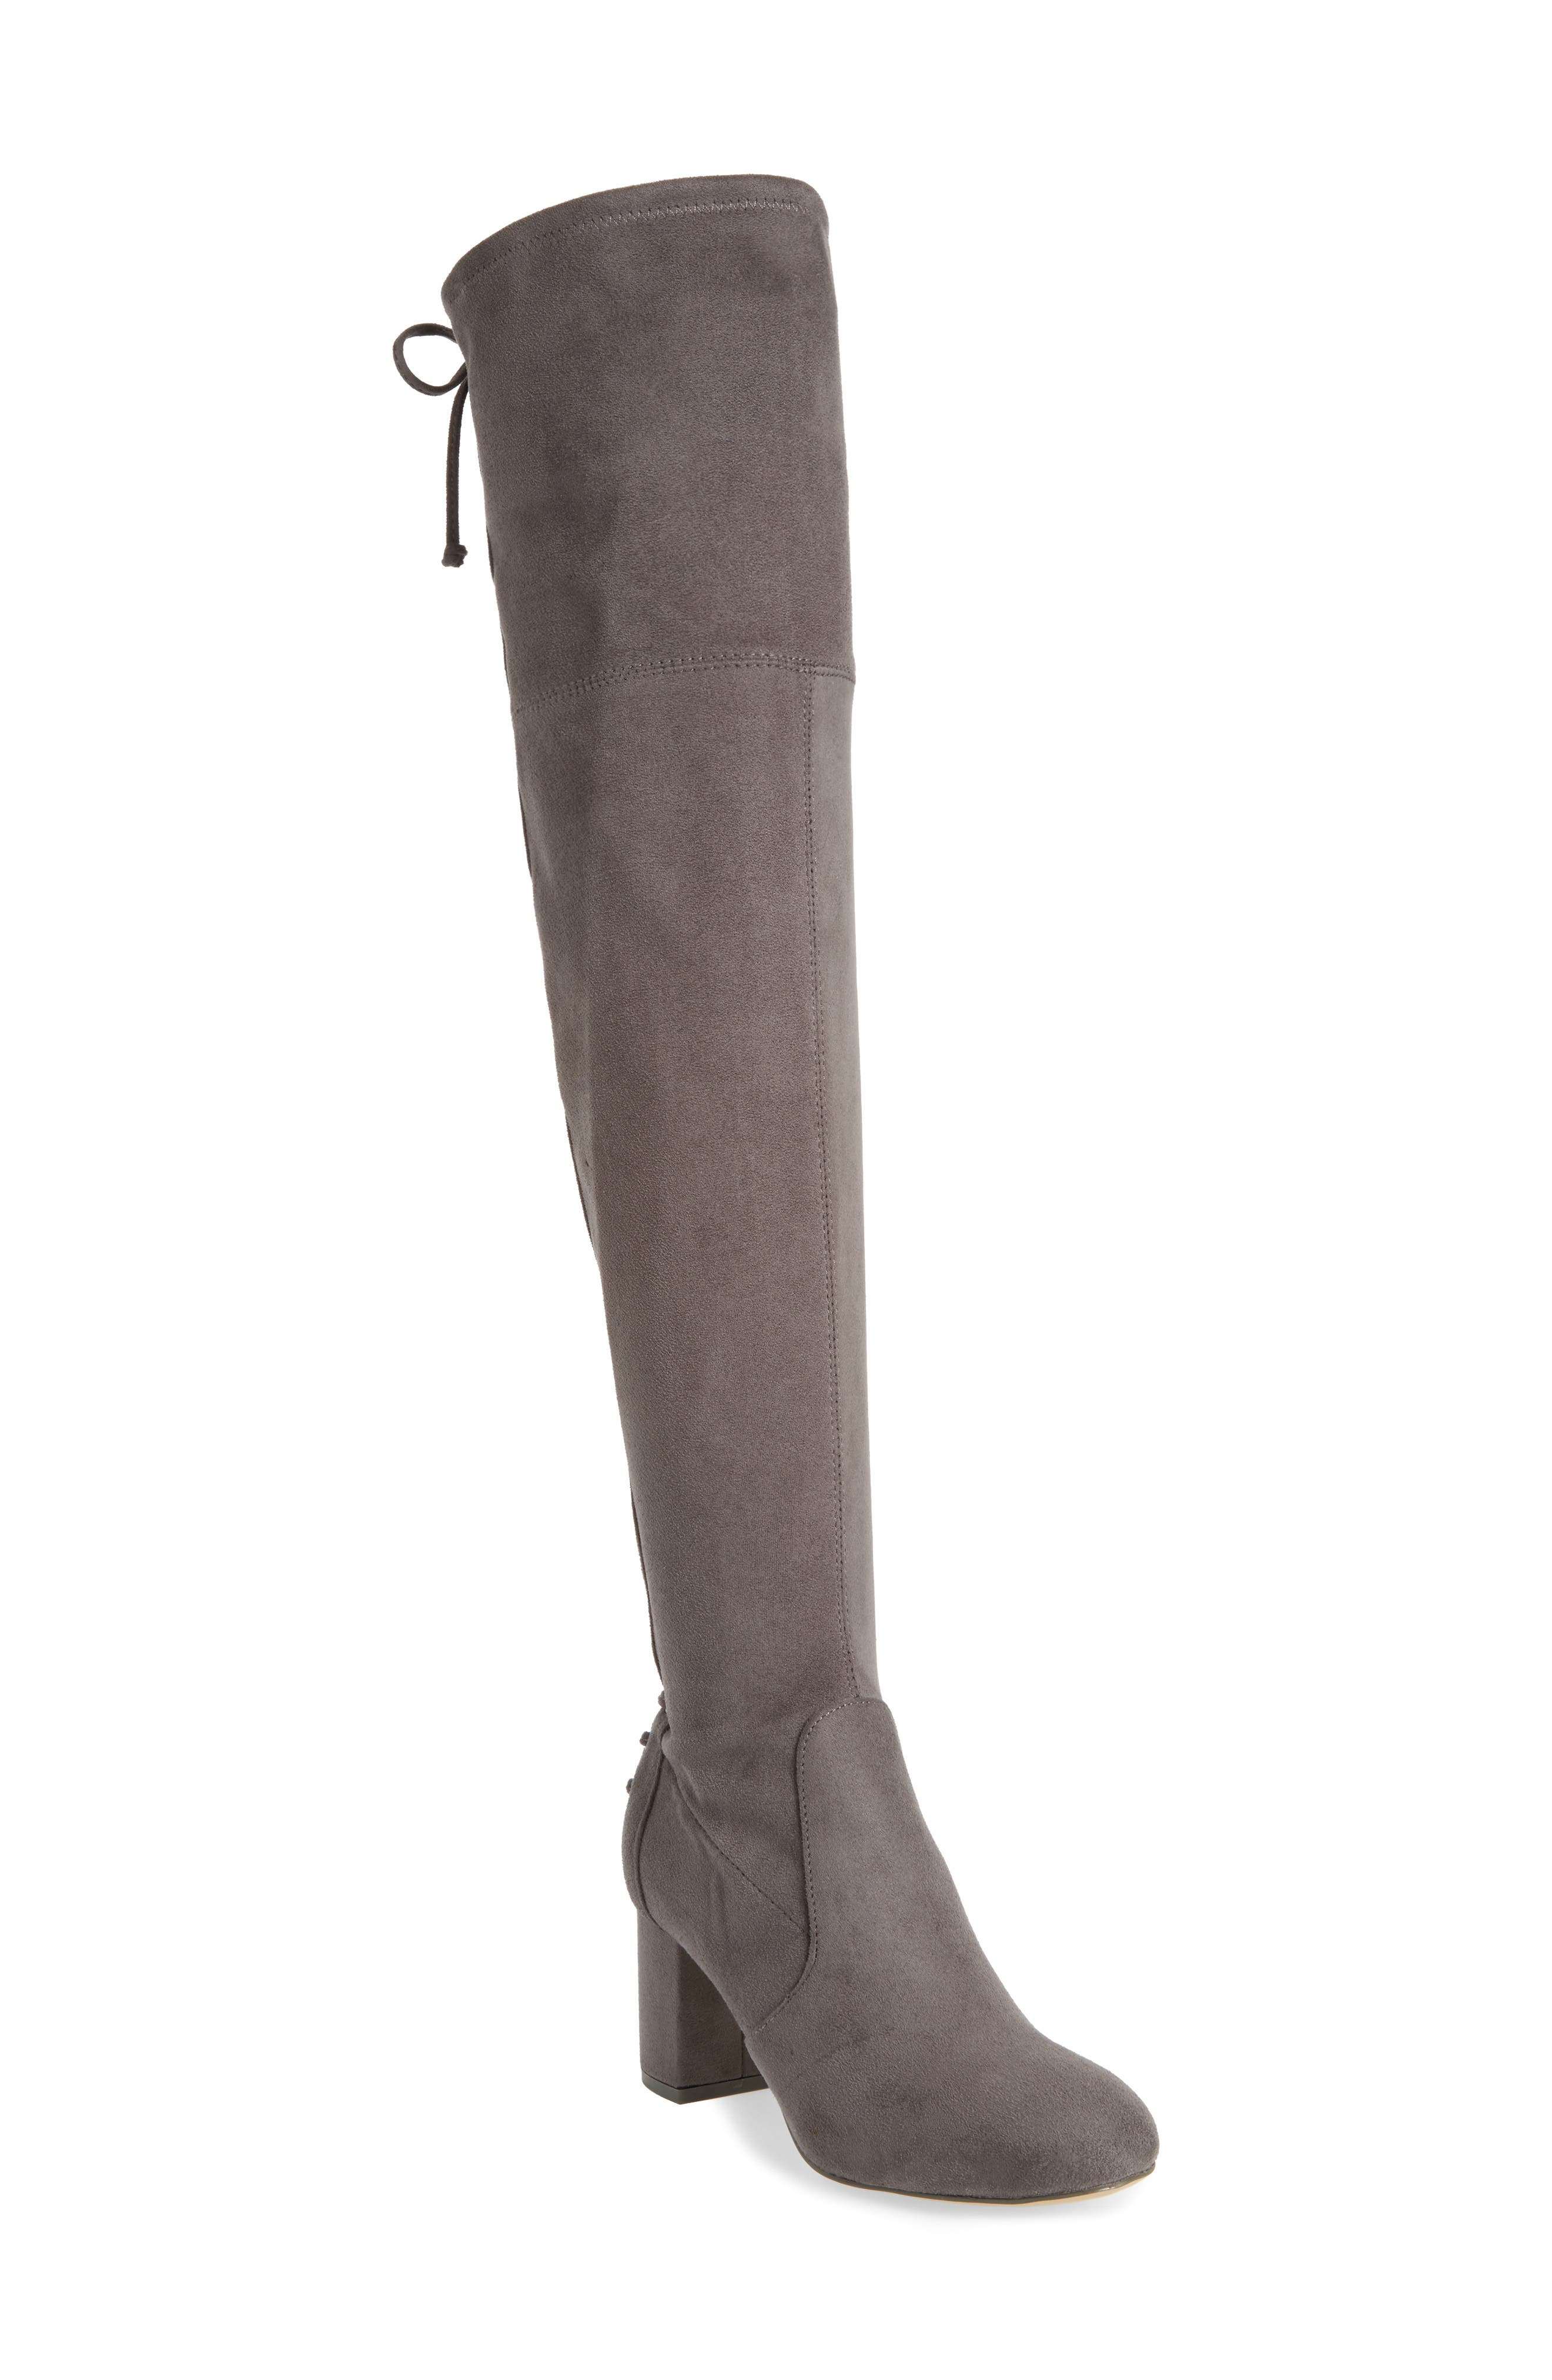 Alternate Image 1 Selected - Charles by Charles David Ollie Over the Knee Boot (Women)